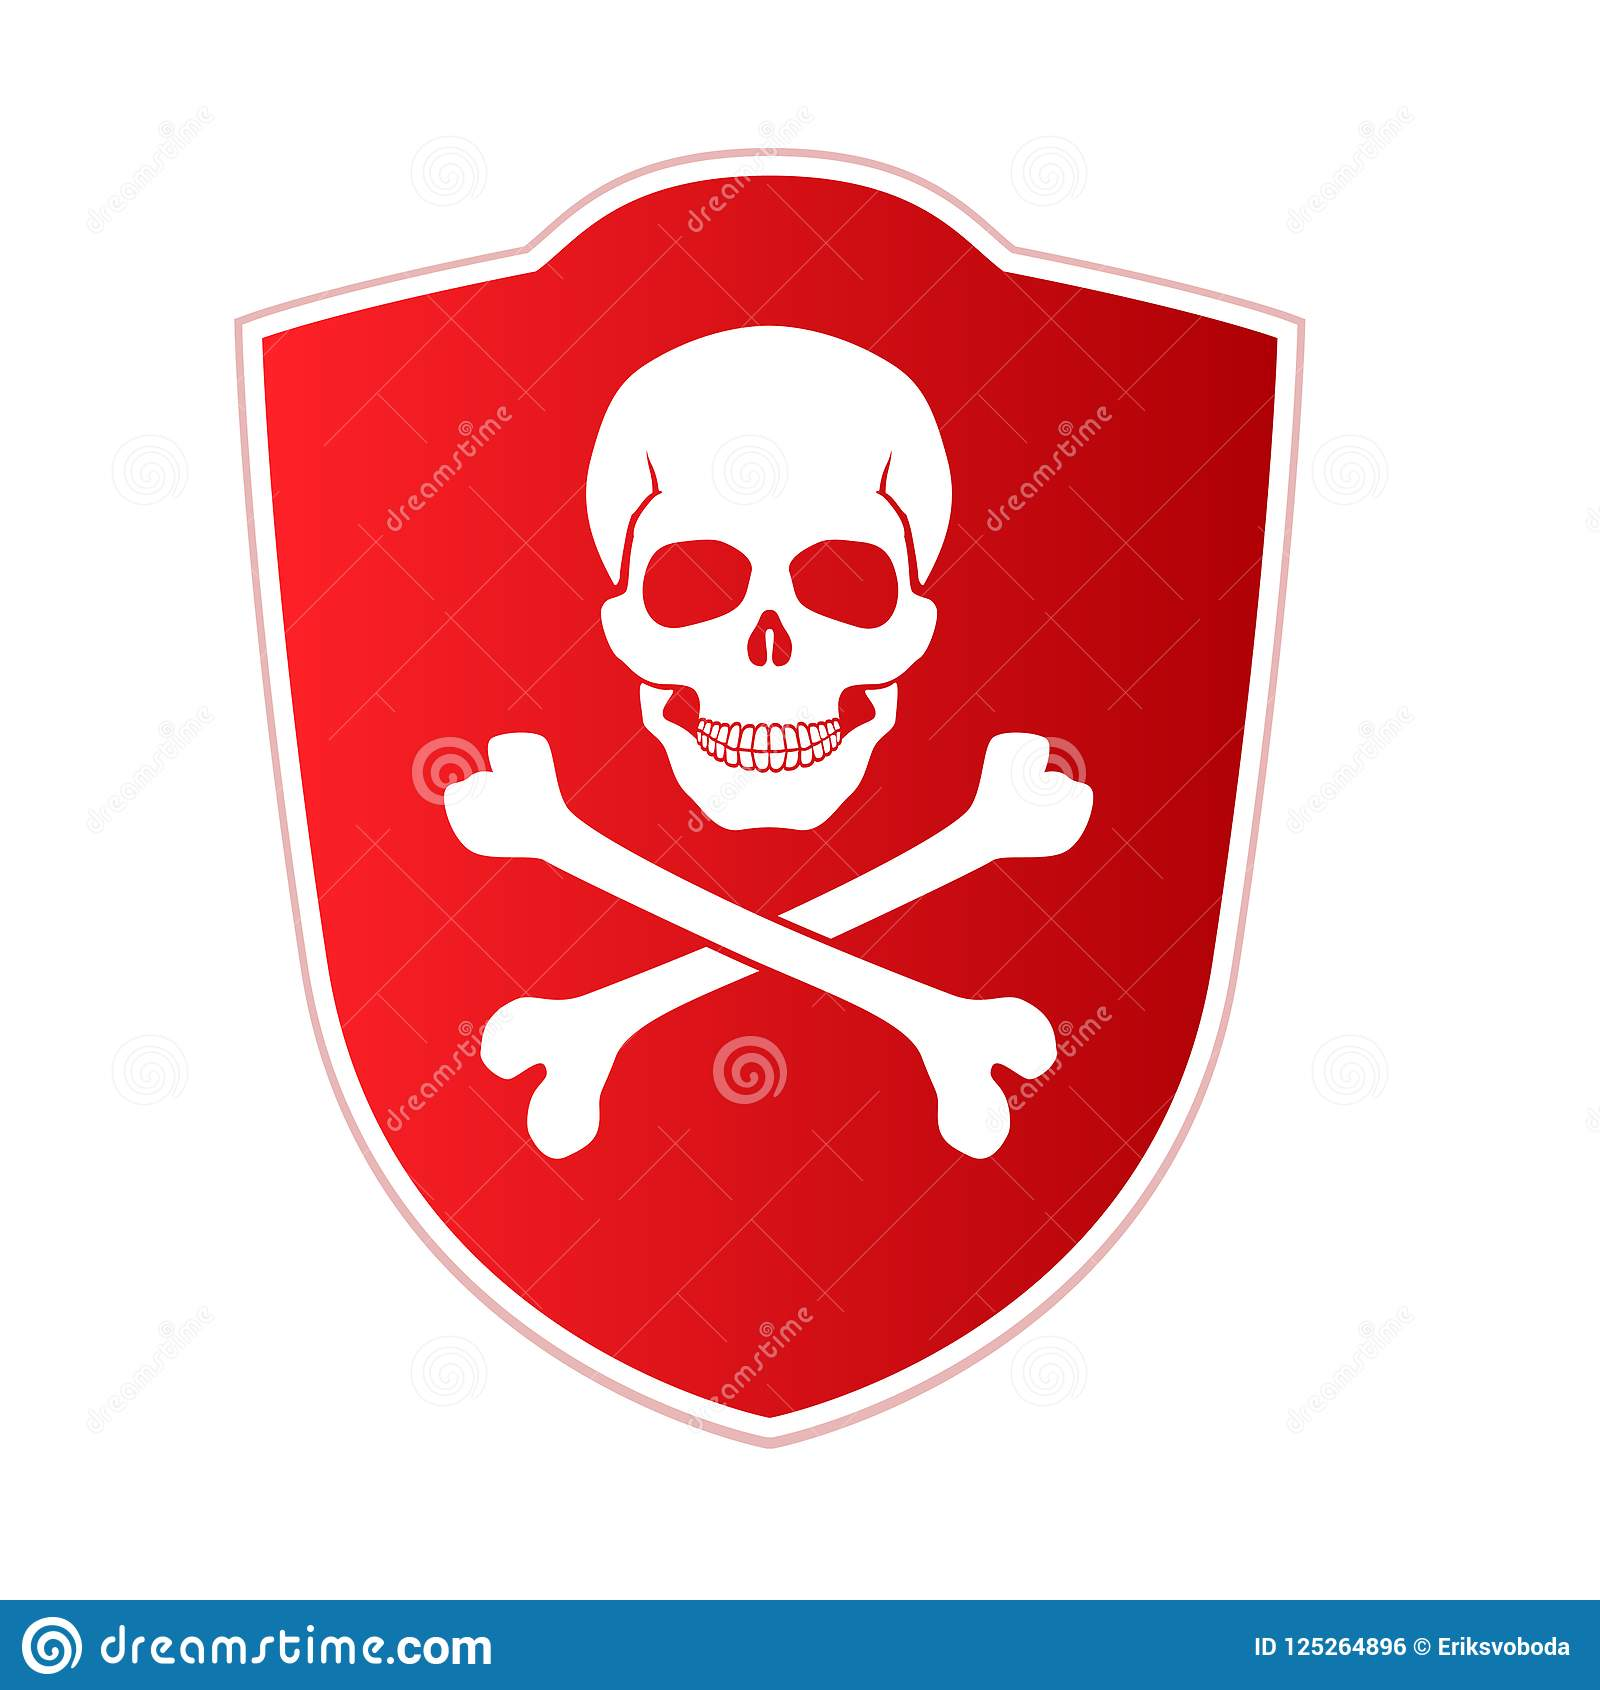 Red shield with emblem of death and danger. Skull and crossed bones on red background. Vector icon, illustration